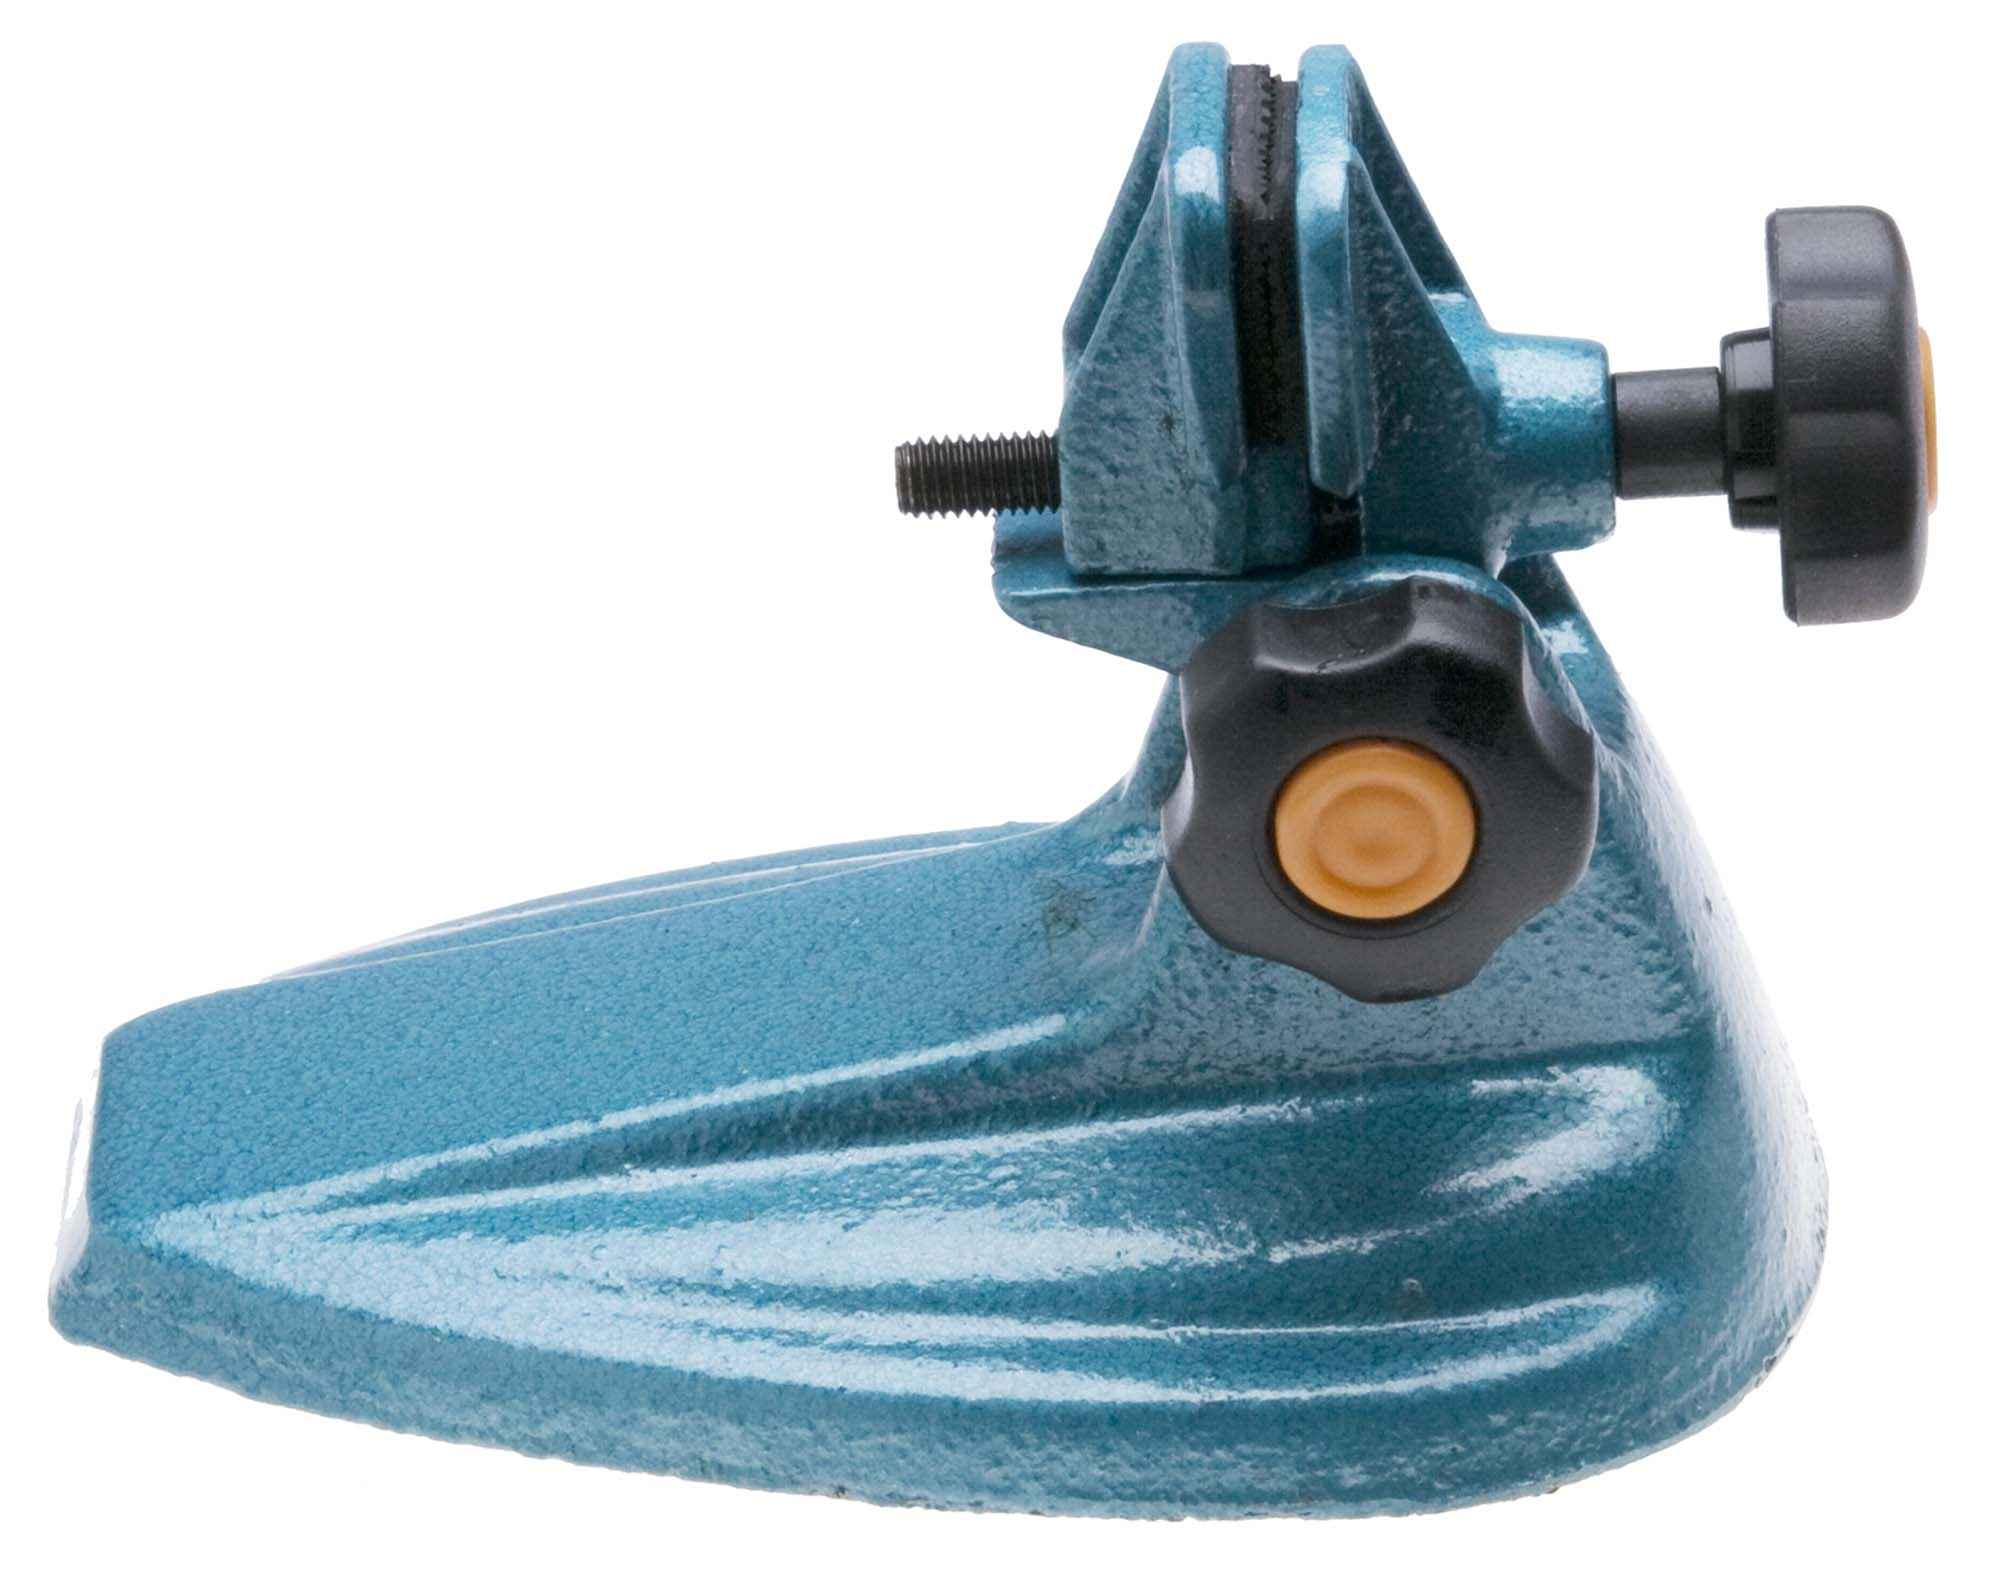 MIC-05 Micrometer Stand - Low Profile